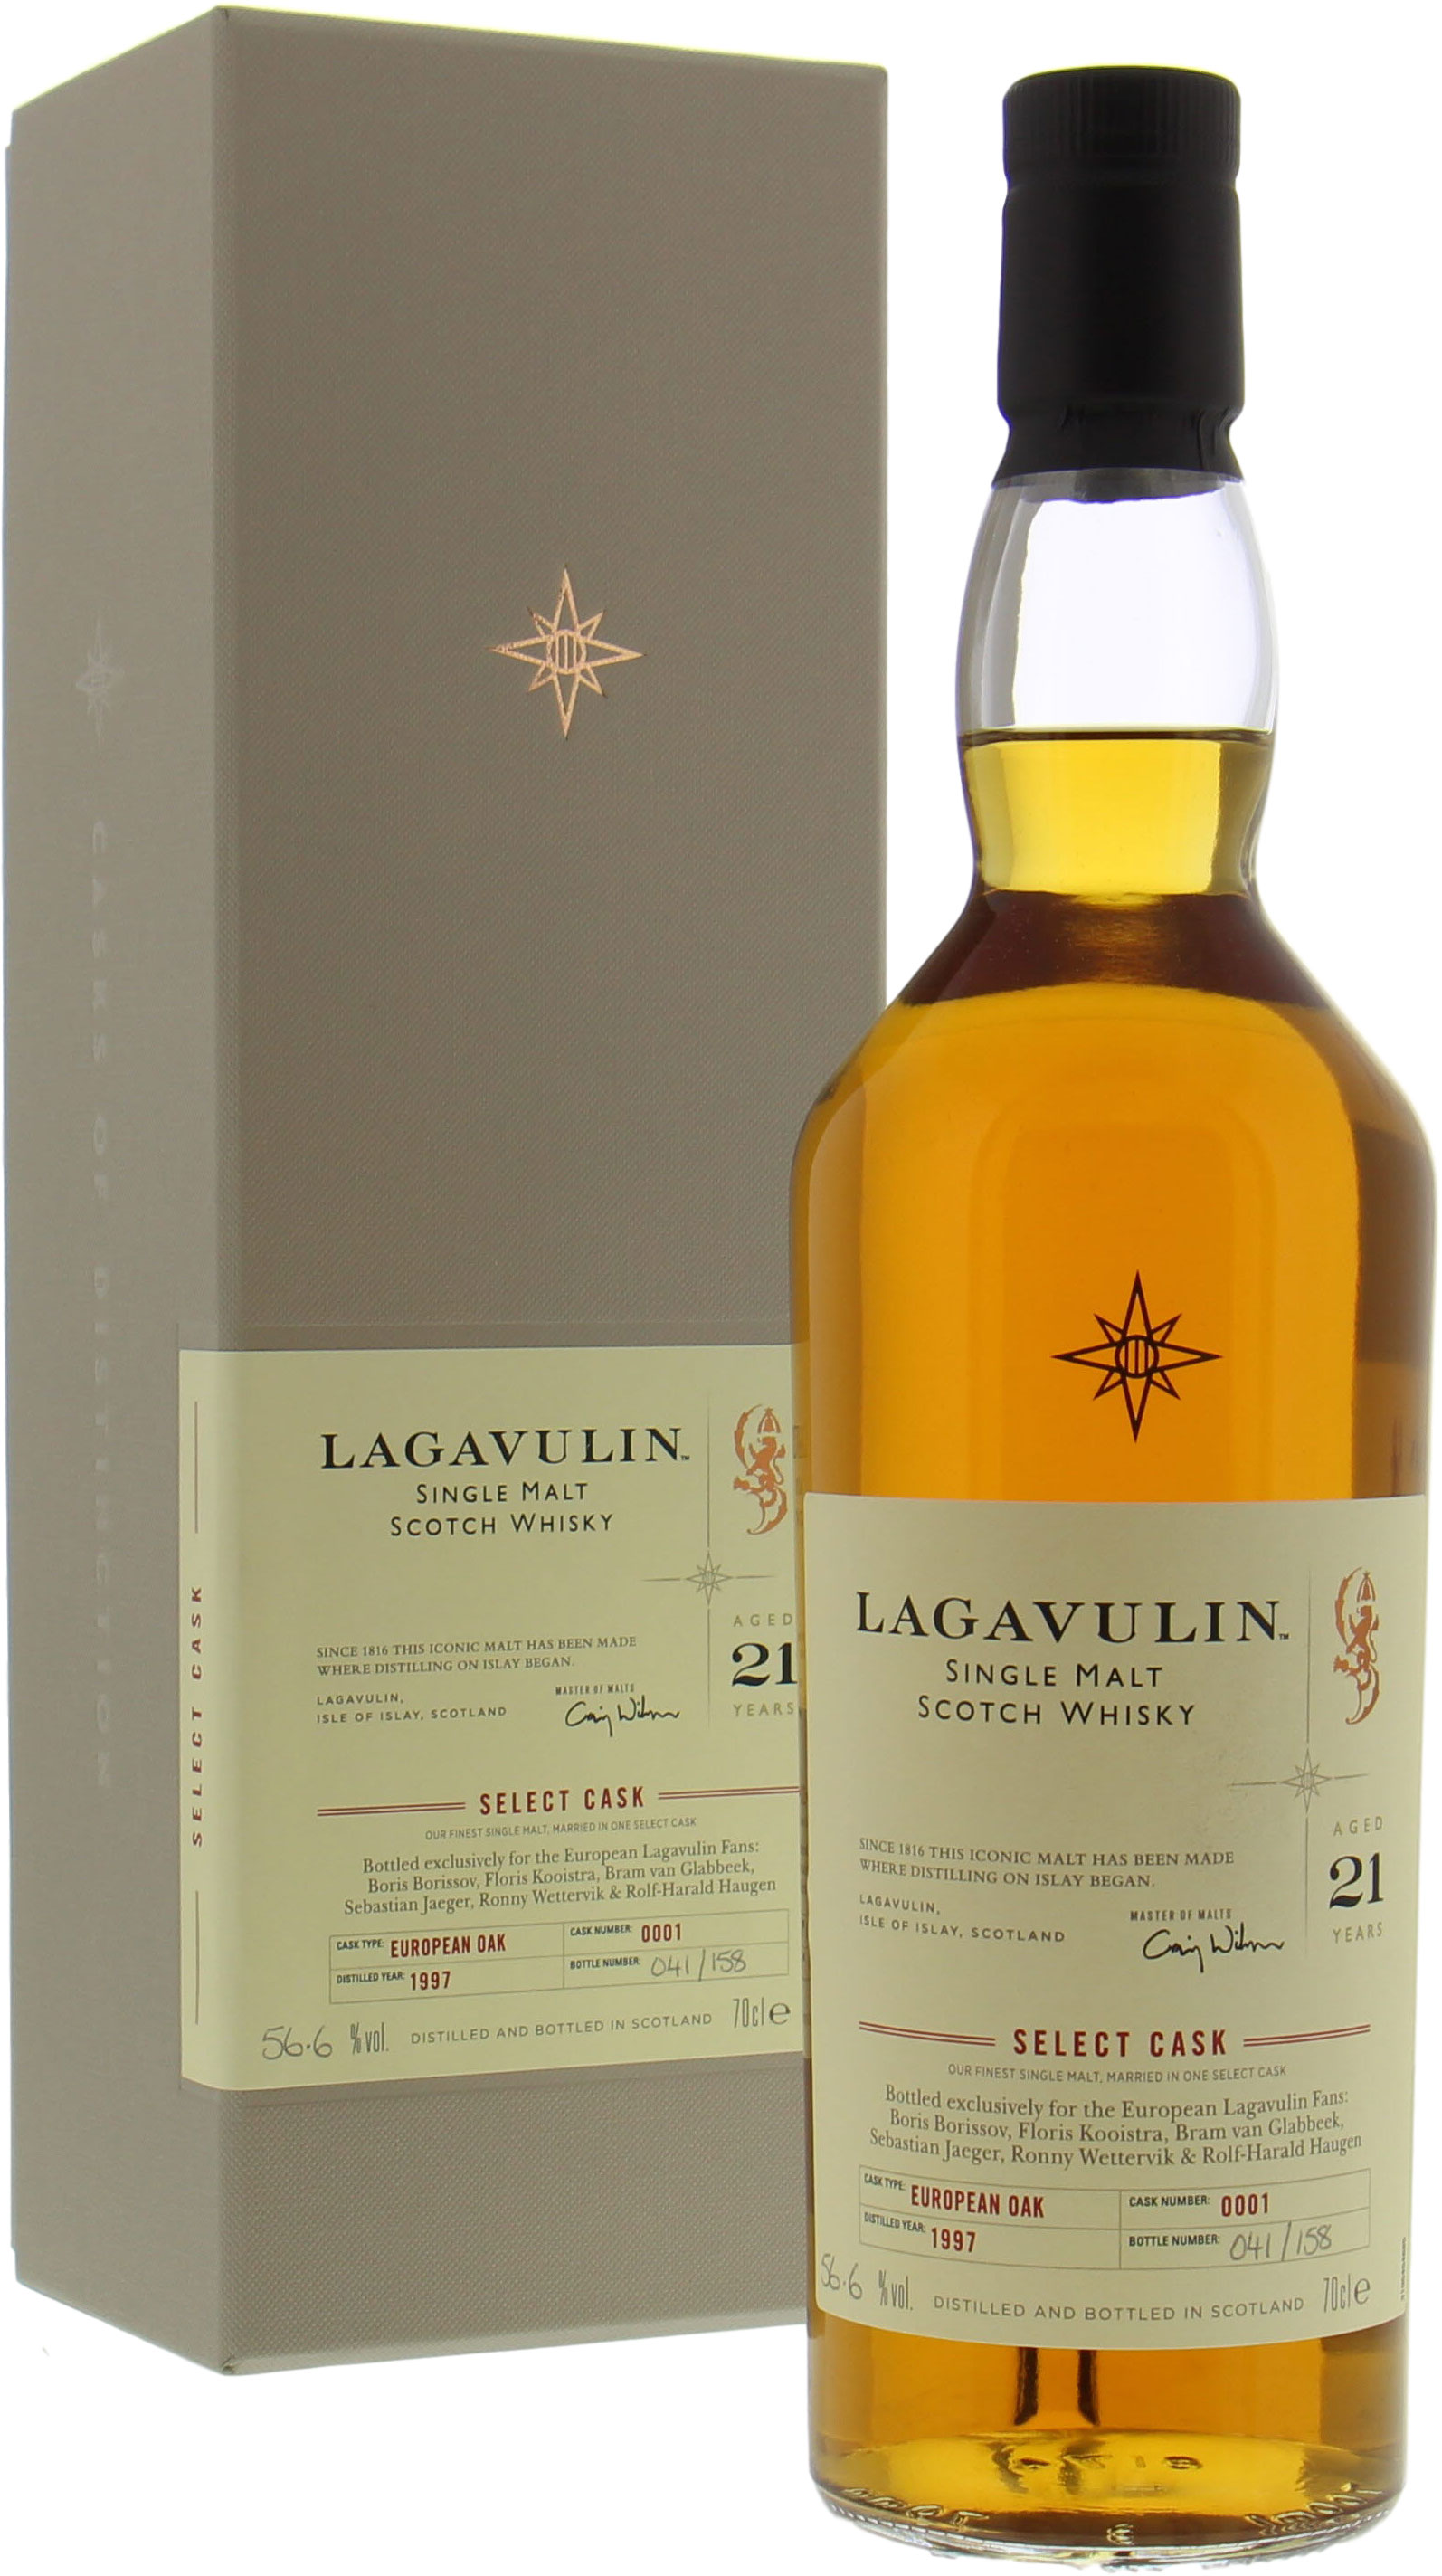 Lagavulin - 21 Years Old for European Lagavulin Fans (WhiskyNerds) Cask 0001 56.6% 1997